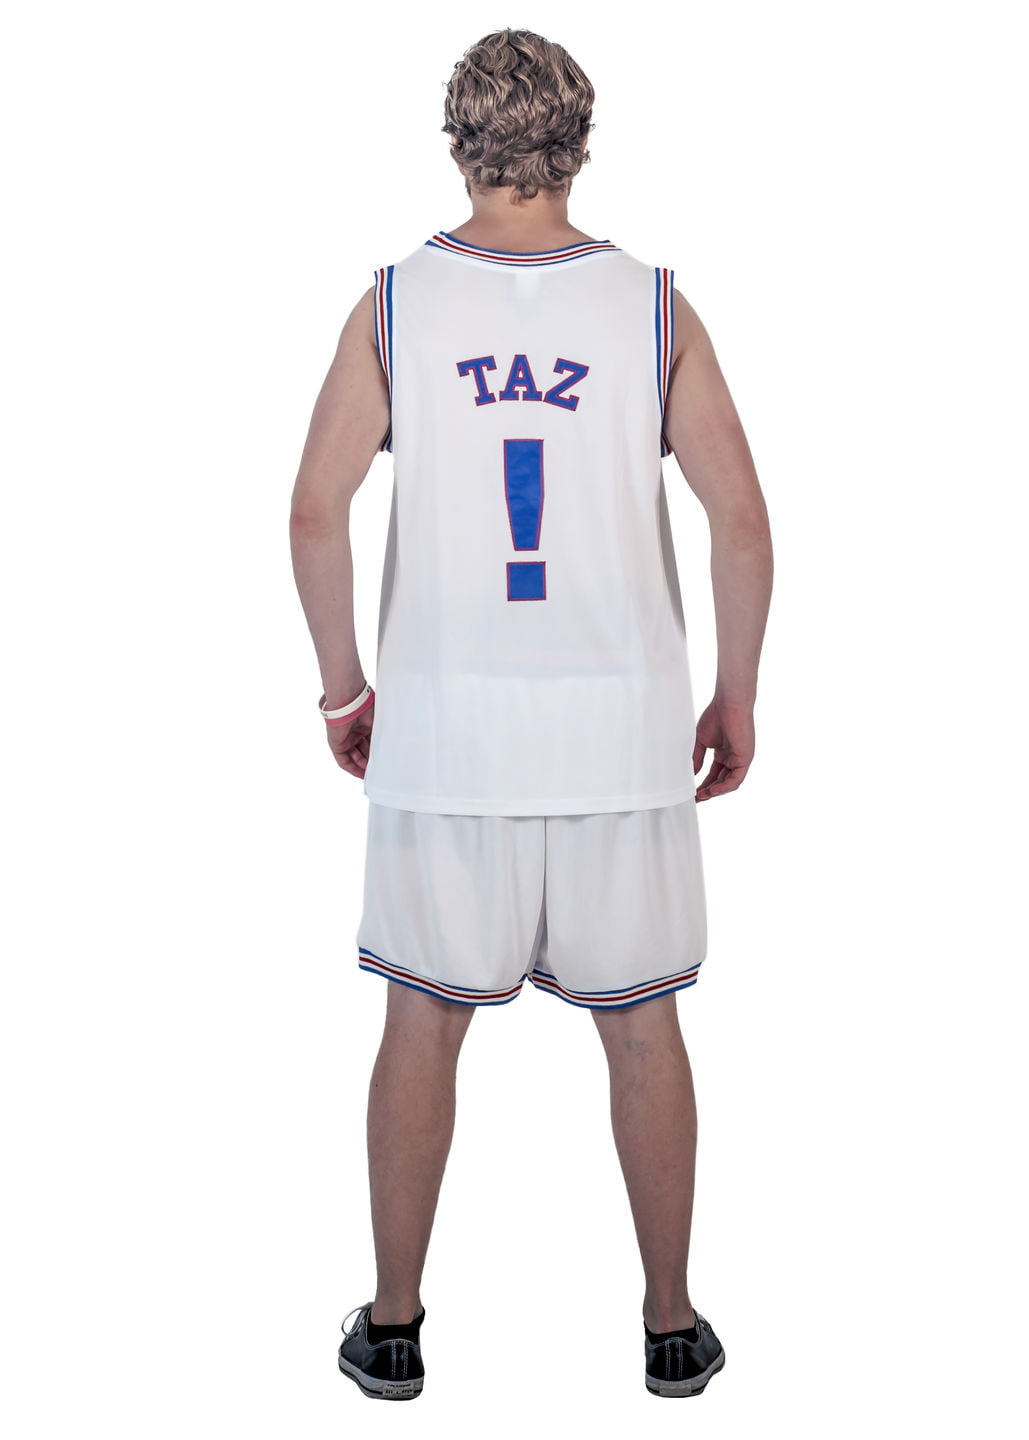 Space Jam Tune Squad Logo Sylvester #9 White Basketball Jersey